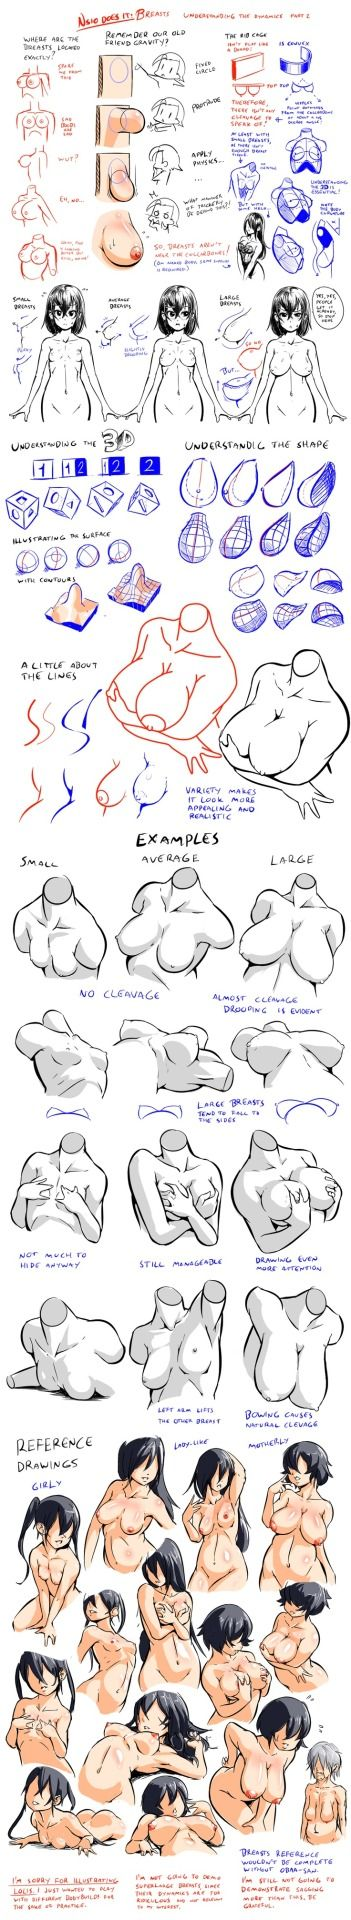 A helpful fuck-ton of boob references. Note that since this contains long images that are currently fuzzy (because tumblr just doesn't want to display 'em clearly), you gotta reverse-image search 'em in google. Just because it's a little extra work...